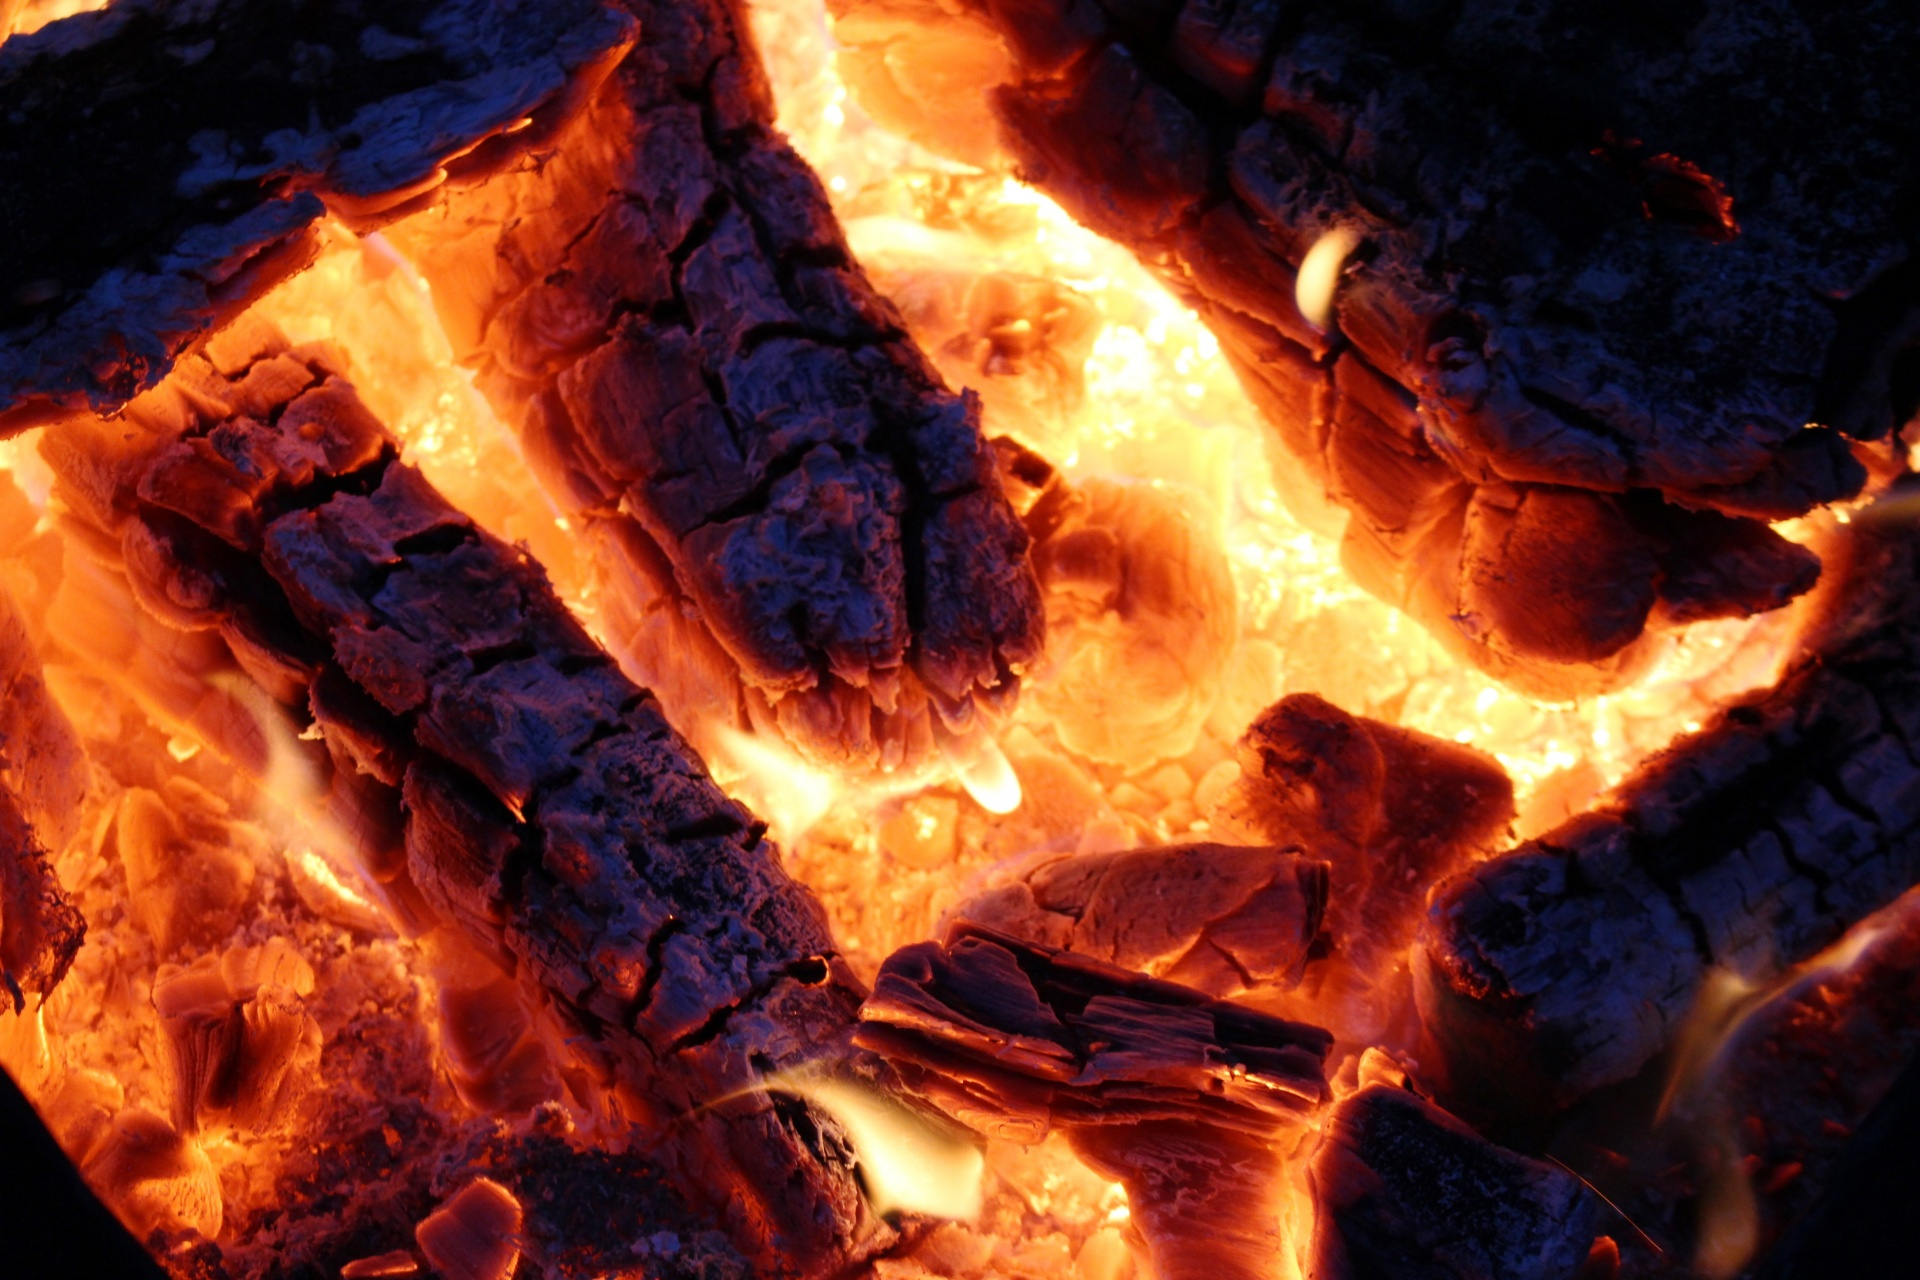 Animated Background Wallpaper Camp Fire And Embers Free Stock Photo Public Domain Pictures